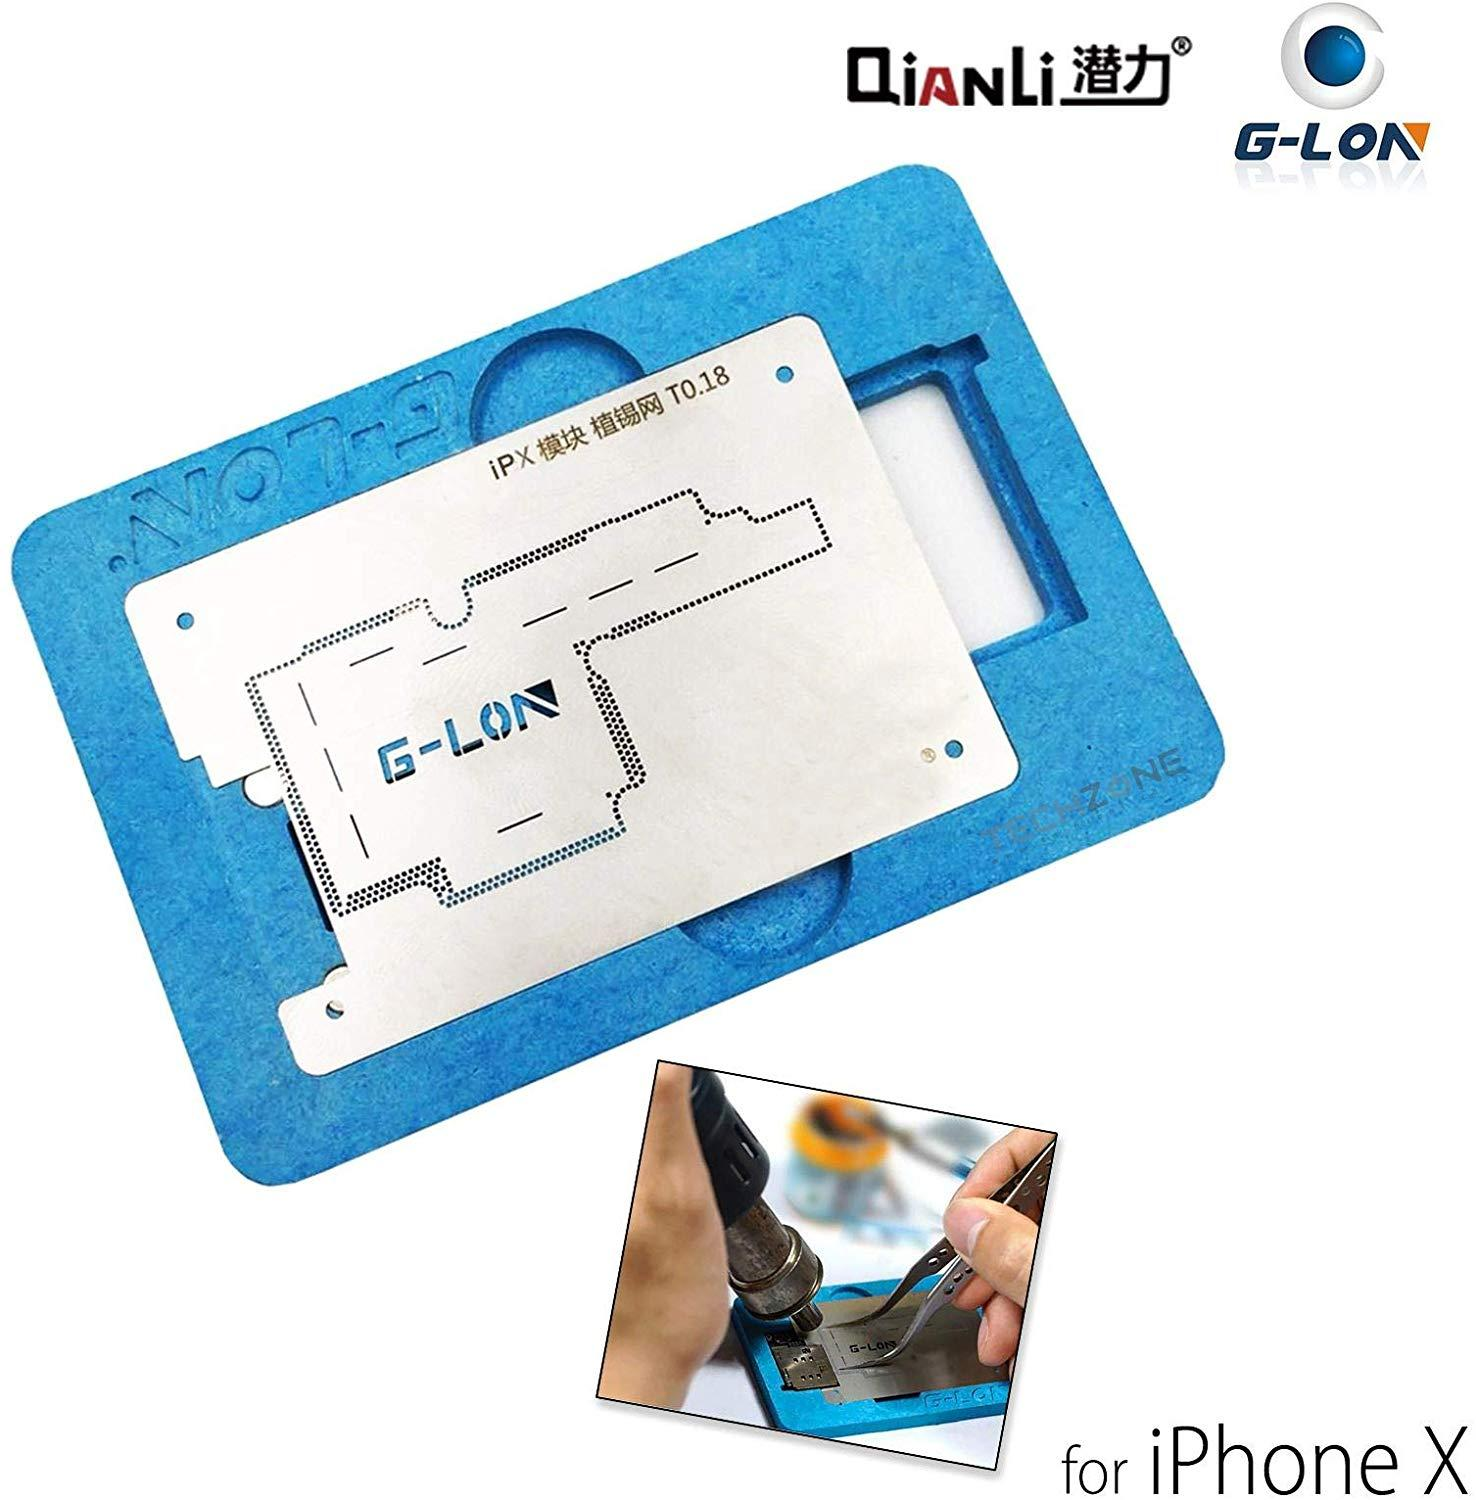 G Lon Middle Layer Board BGA Reballing Stencil Plant Tin Platform for iPhone X Motherboard Repair with Solder Paste Phone Screen Opening Tools     - title=